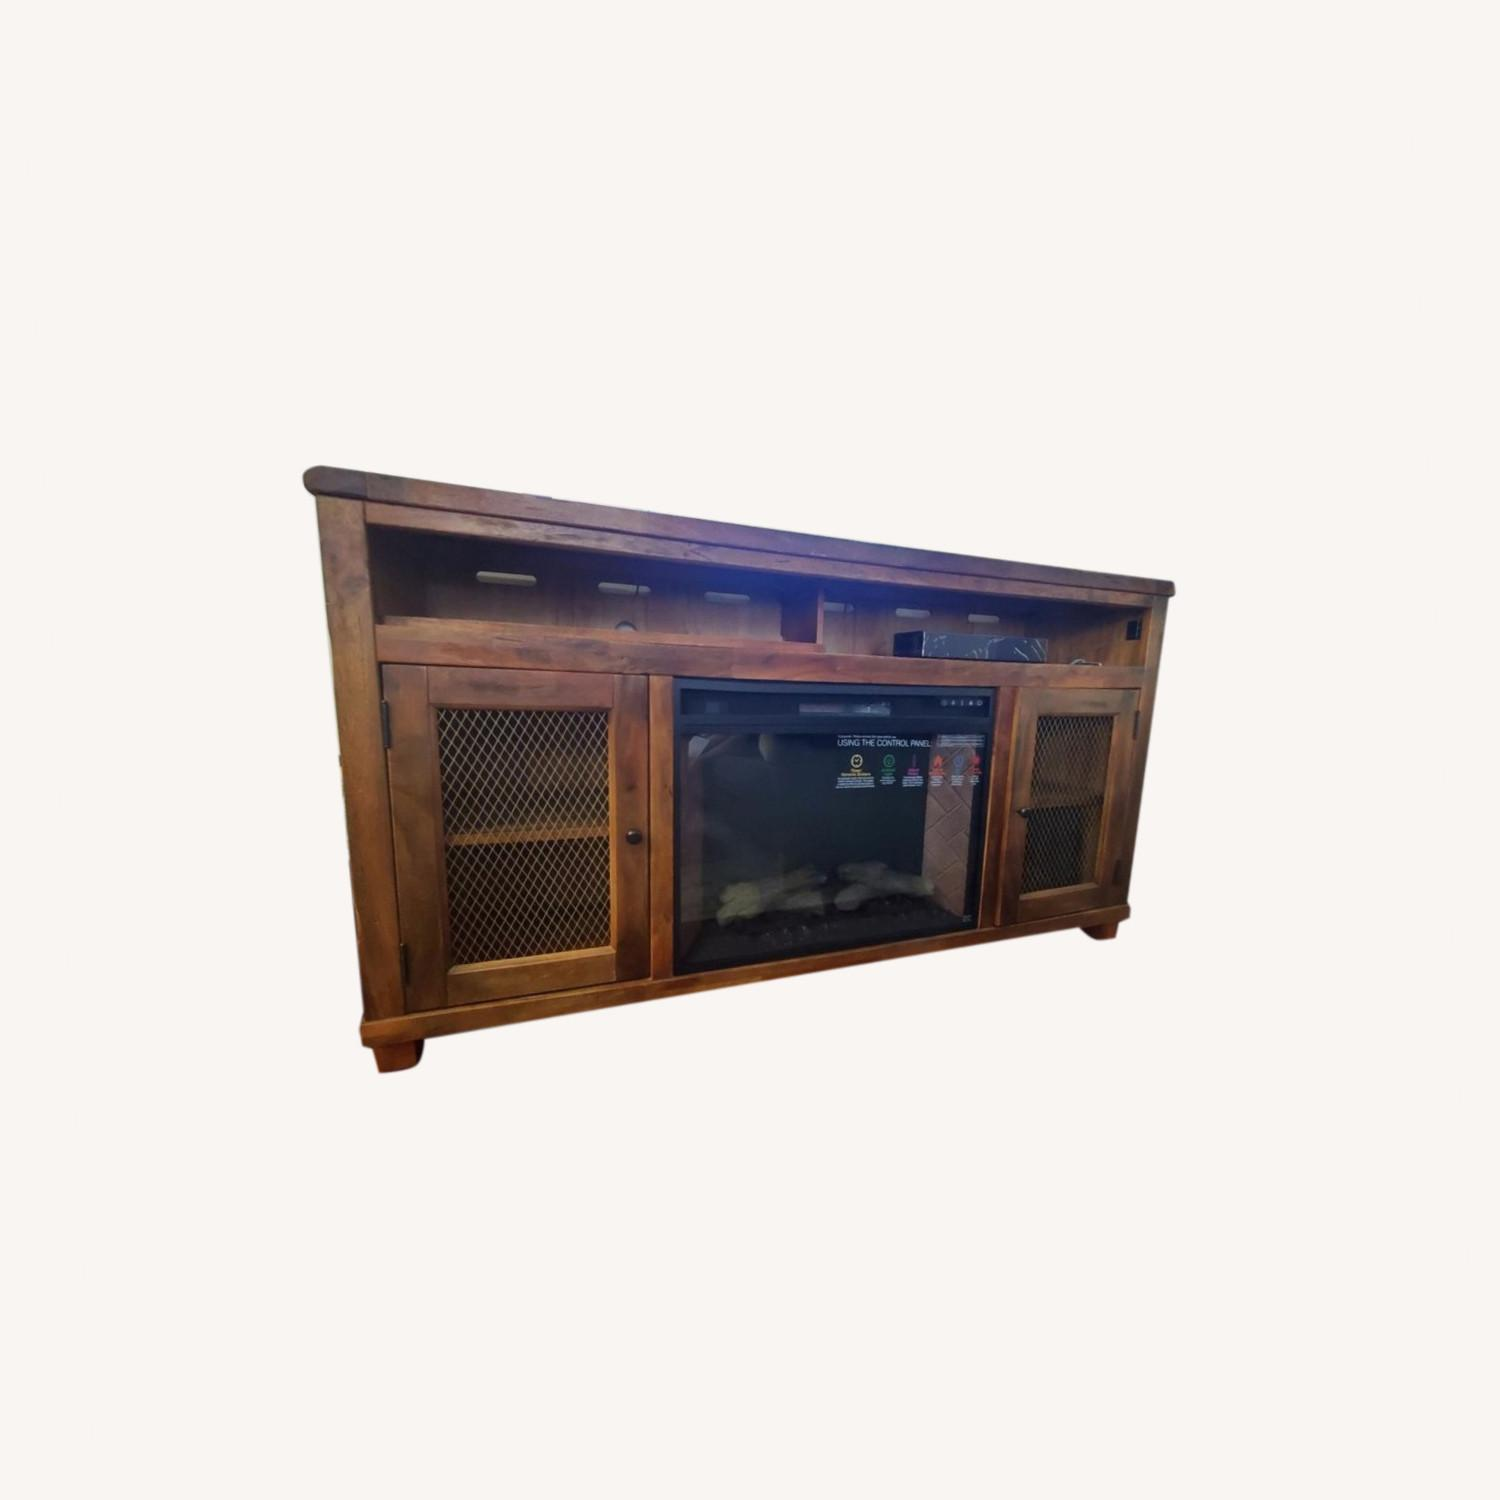 Ashley Furniture Credenza with a Fire Place, TV Stand - image-0